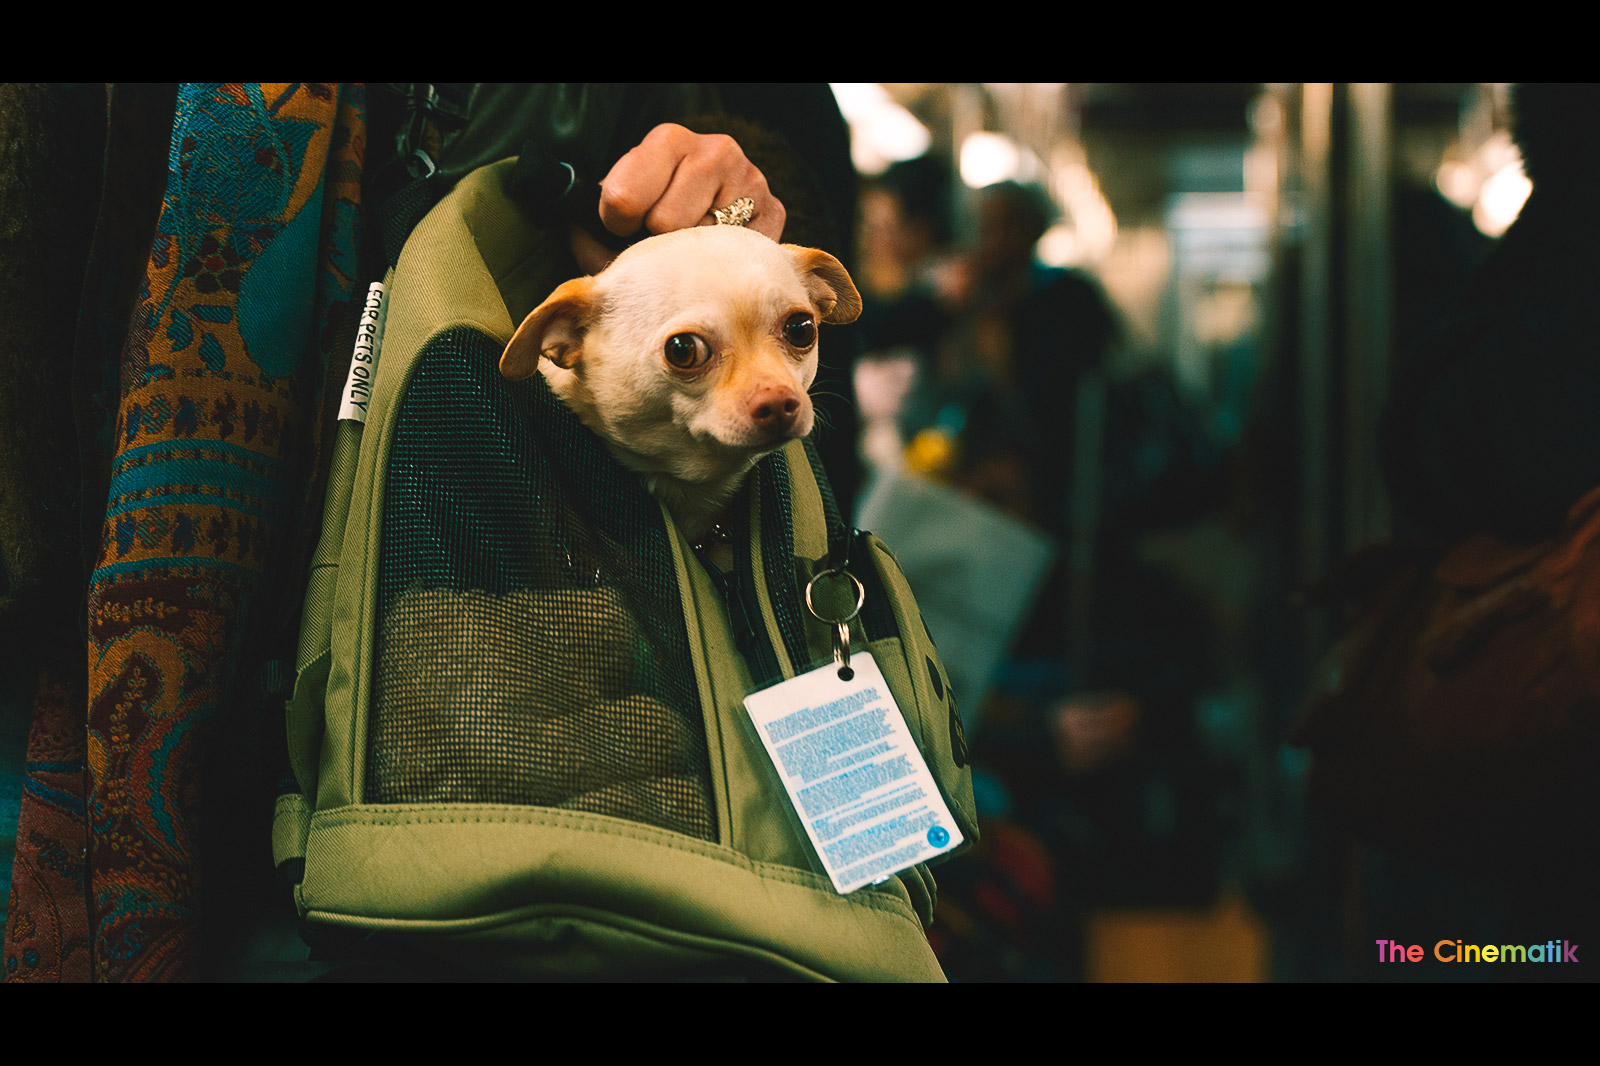 little-dog-with-big-eyes-carried-in-a-bag-and-taking-subway.jpg